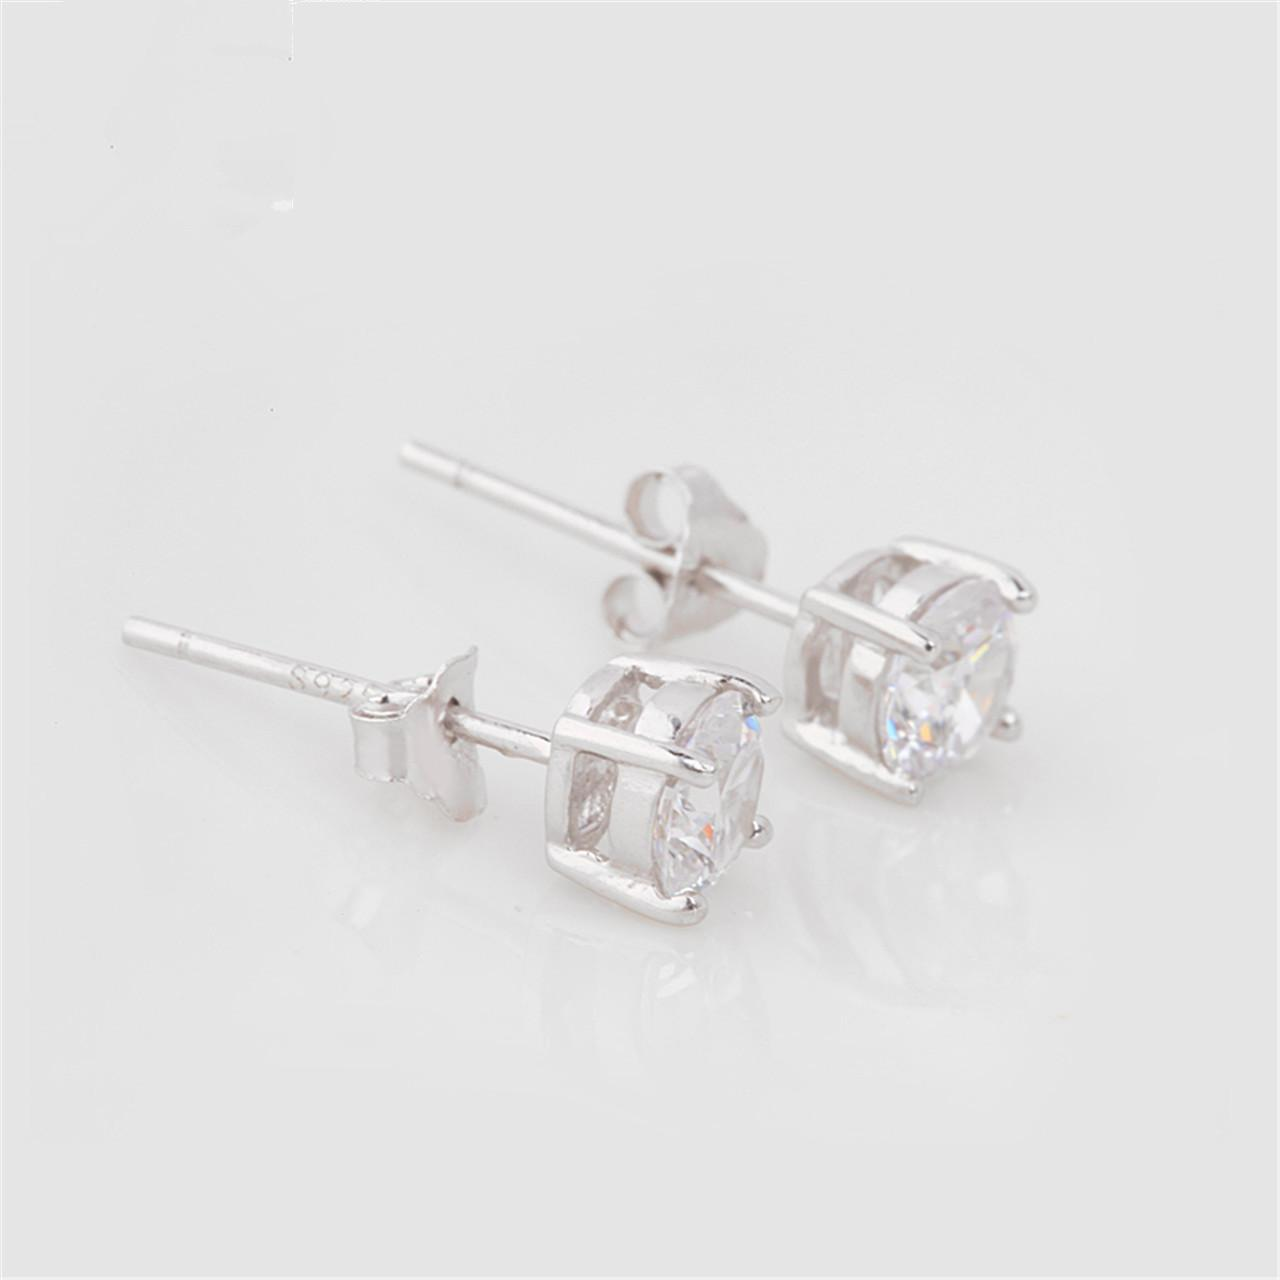 Earrings For Men And Women Fashion Jewelry Cheap Stud Earring 925 Sterling  Silver Cute Four Claw